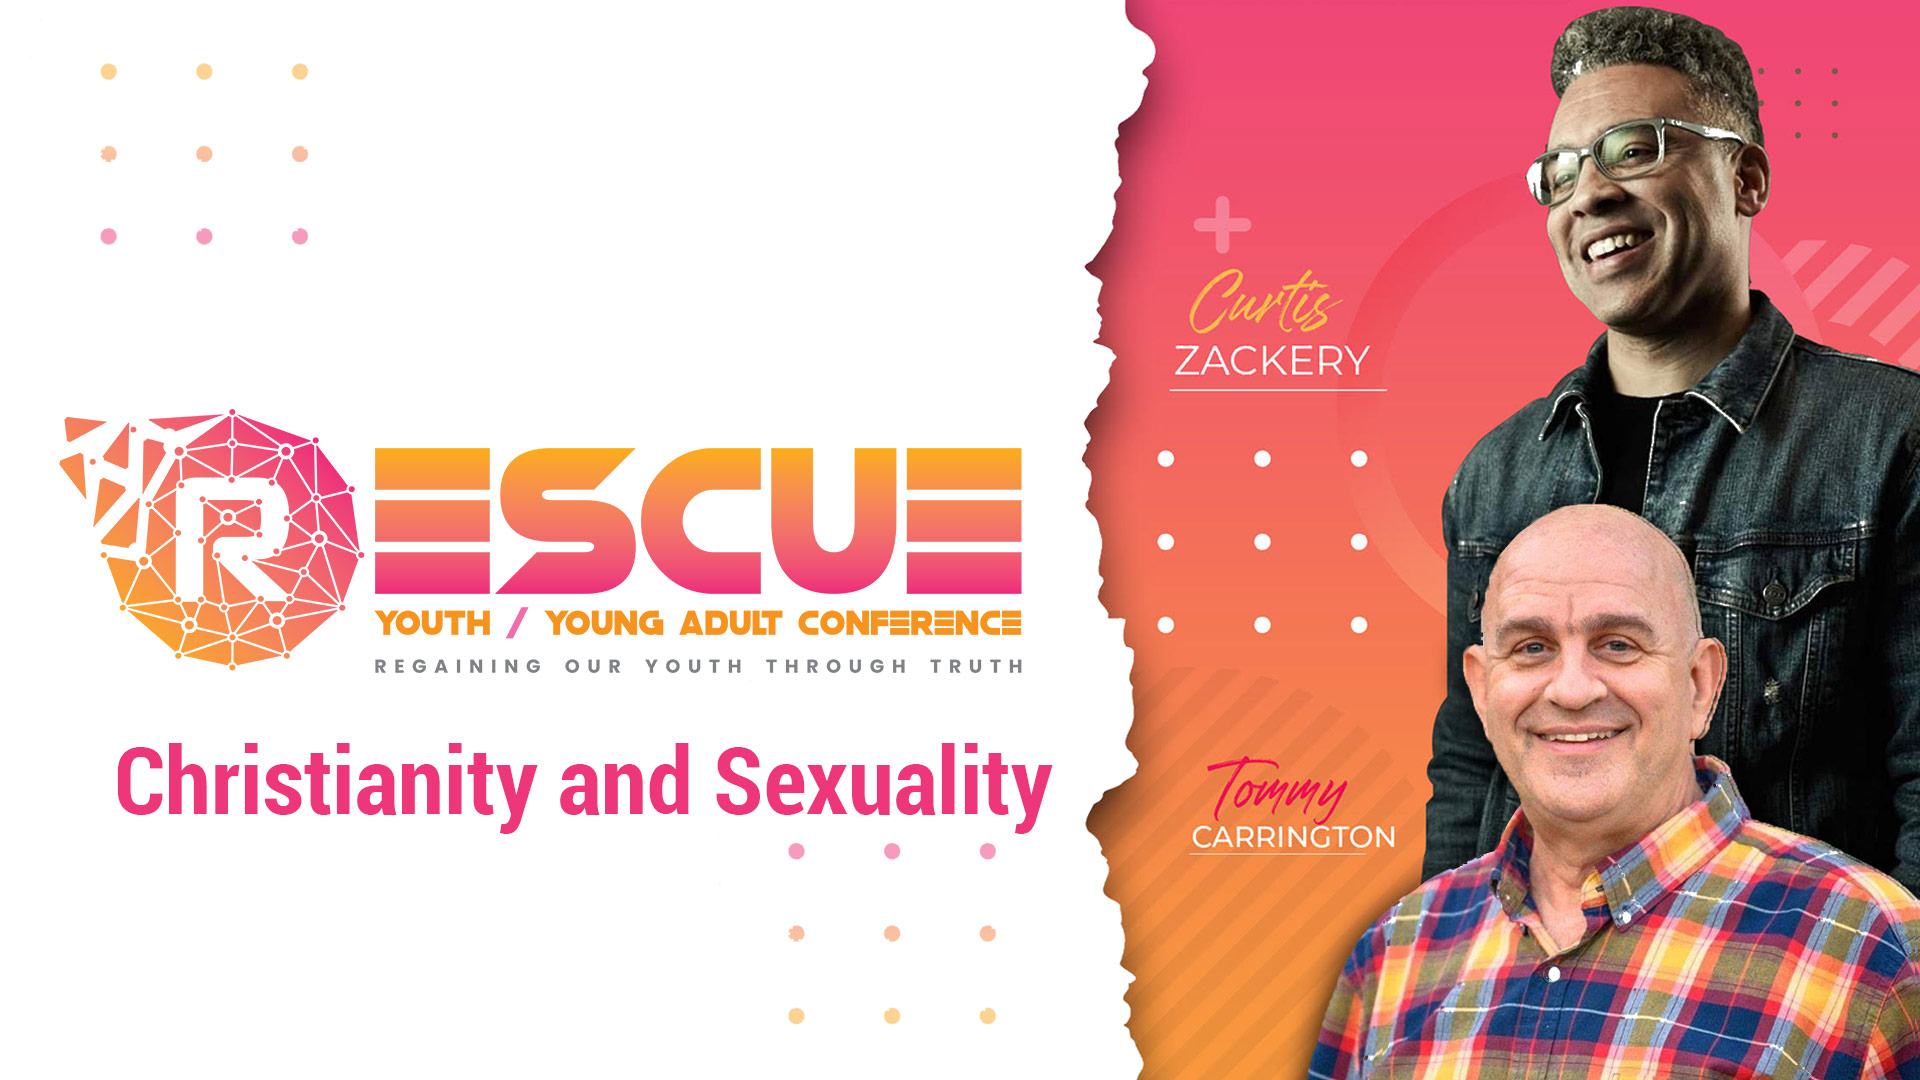 Rescue   Christianity, and Sexuality